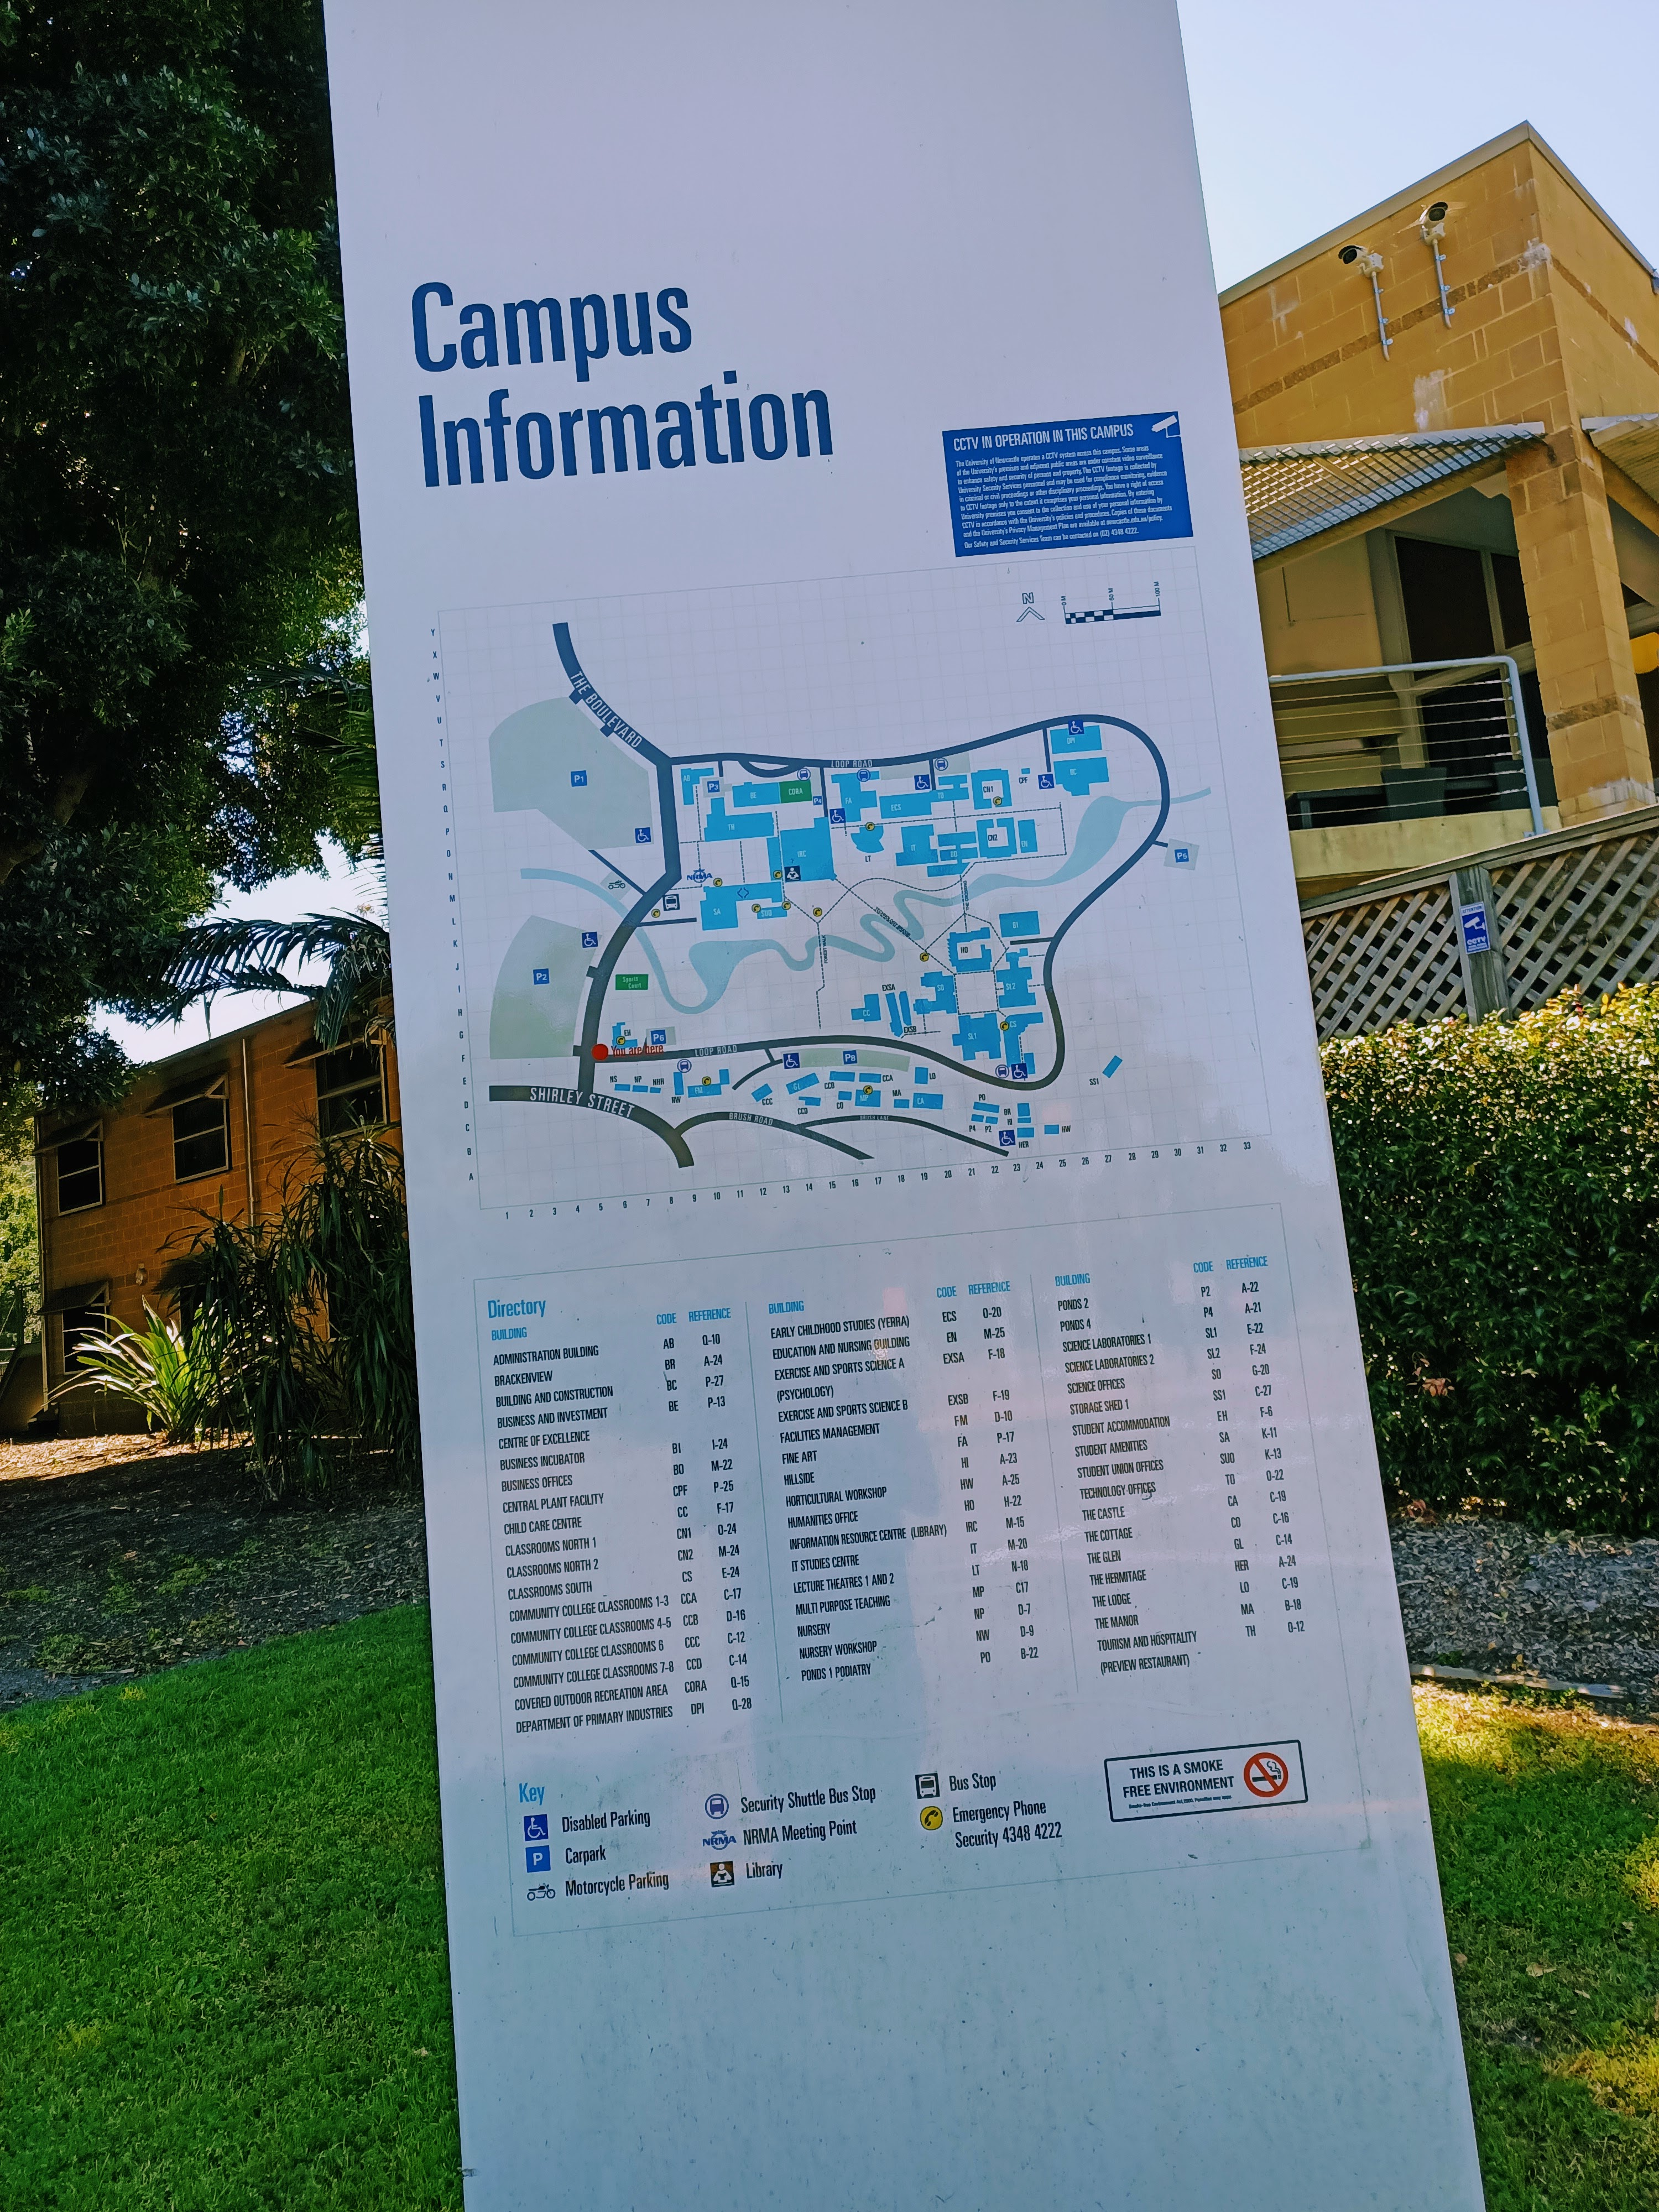 Newcastle University campus at Ourimbah, on the NSW Central Coast.